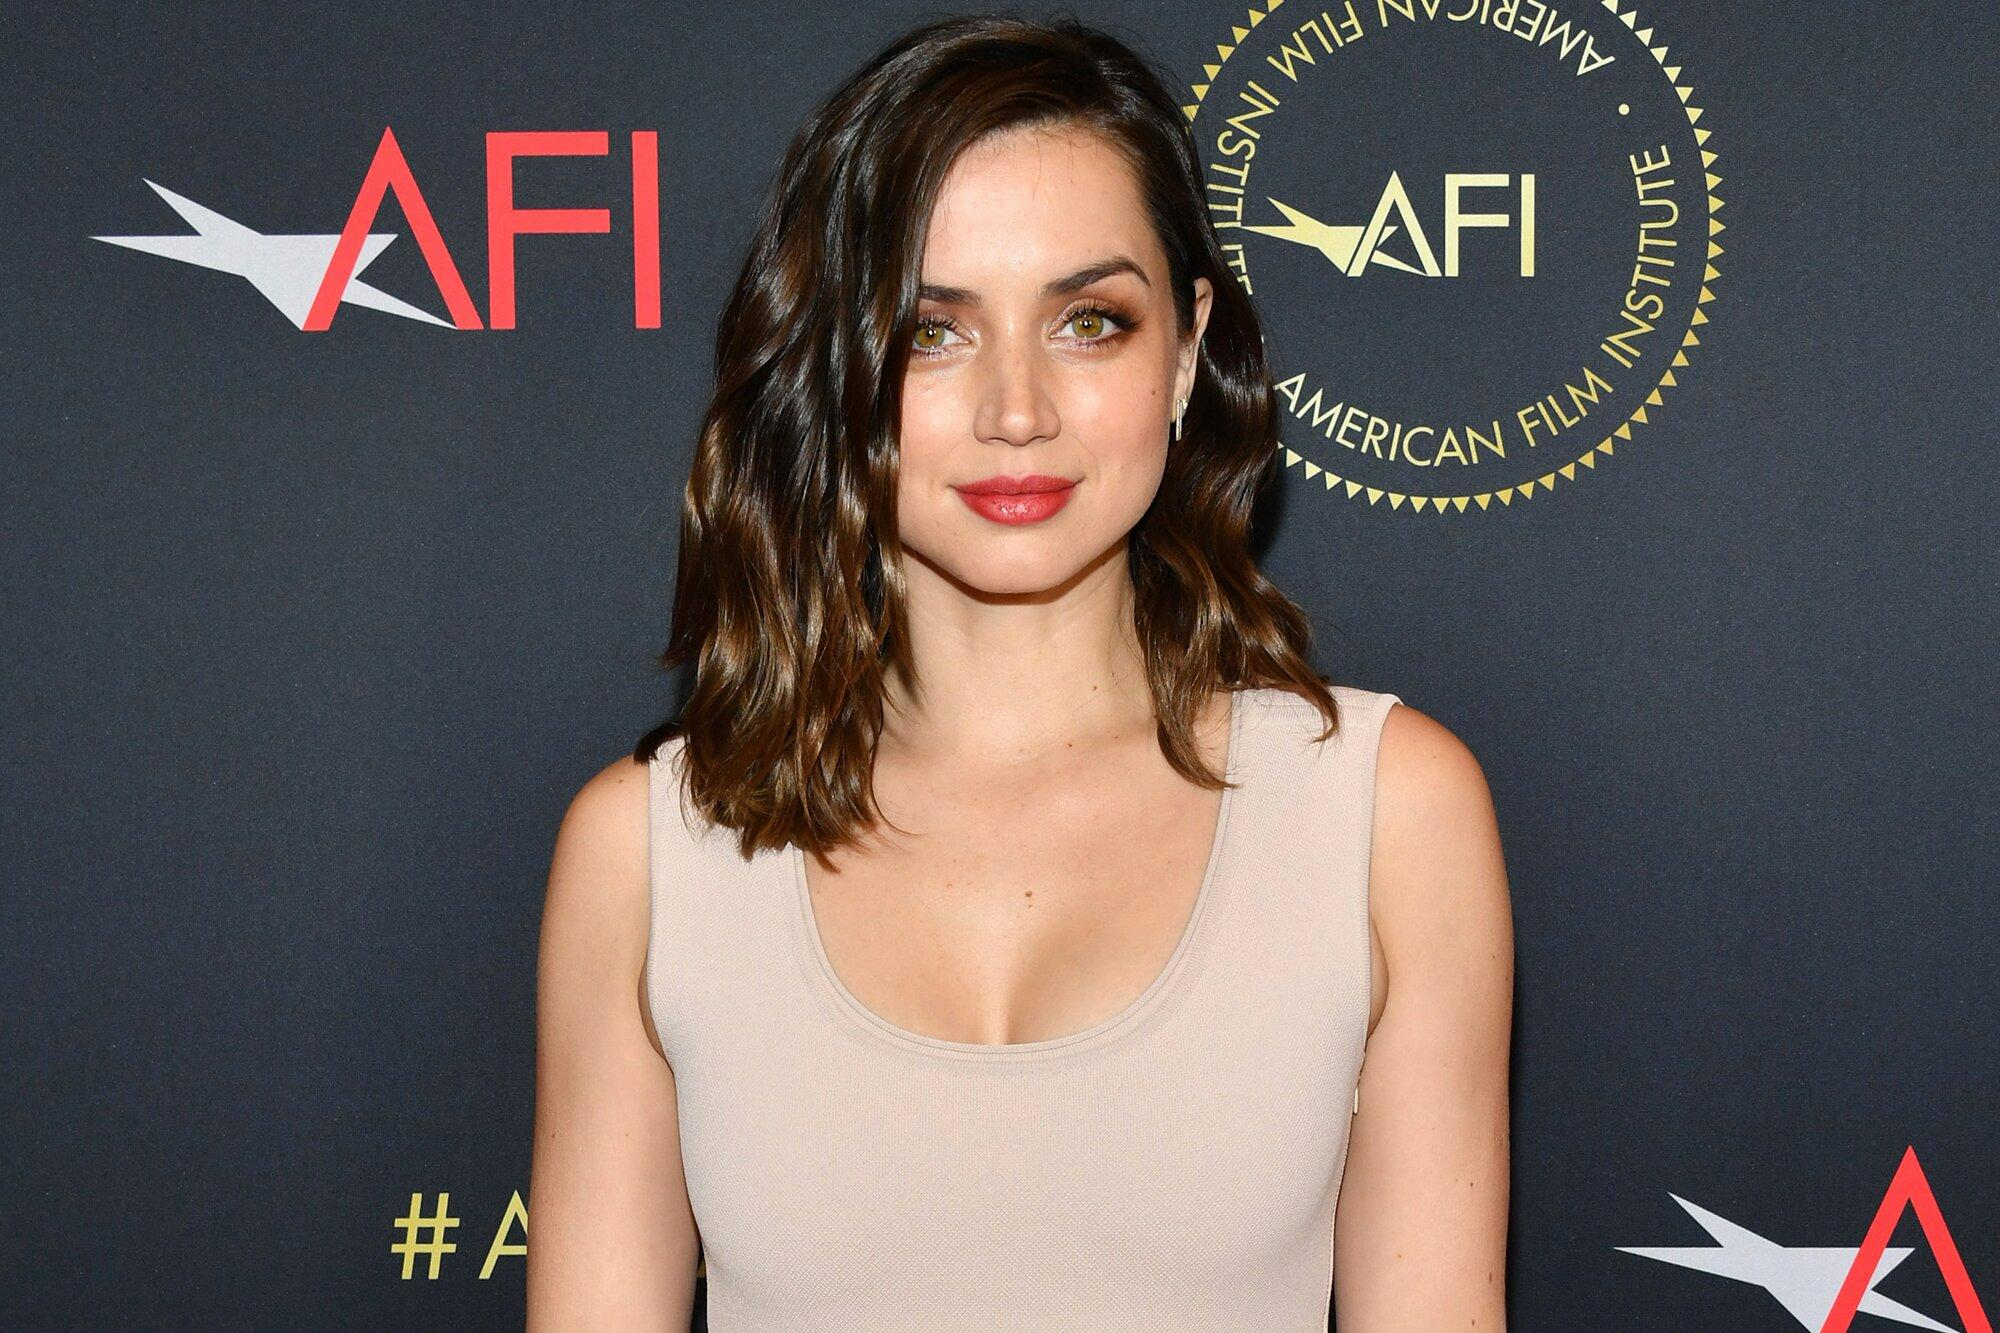 Ana de Armas Says It Took Her 9 Months to Perfect Marilyn Monroe's Voice for New Film: 'So Exhausting'